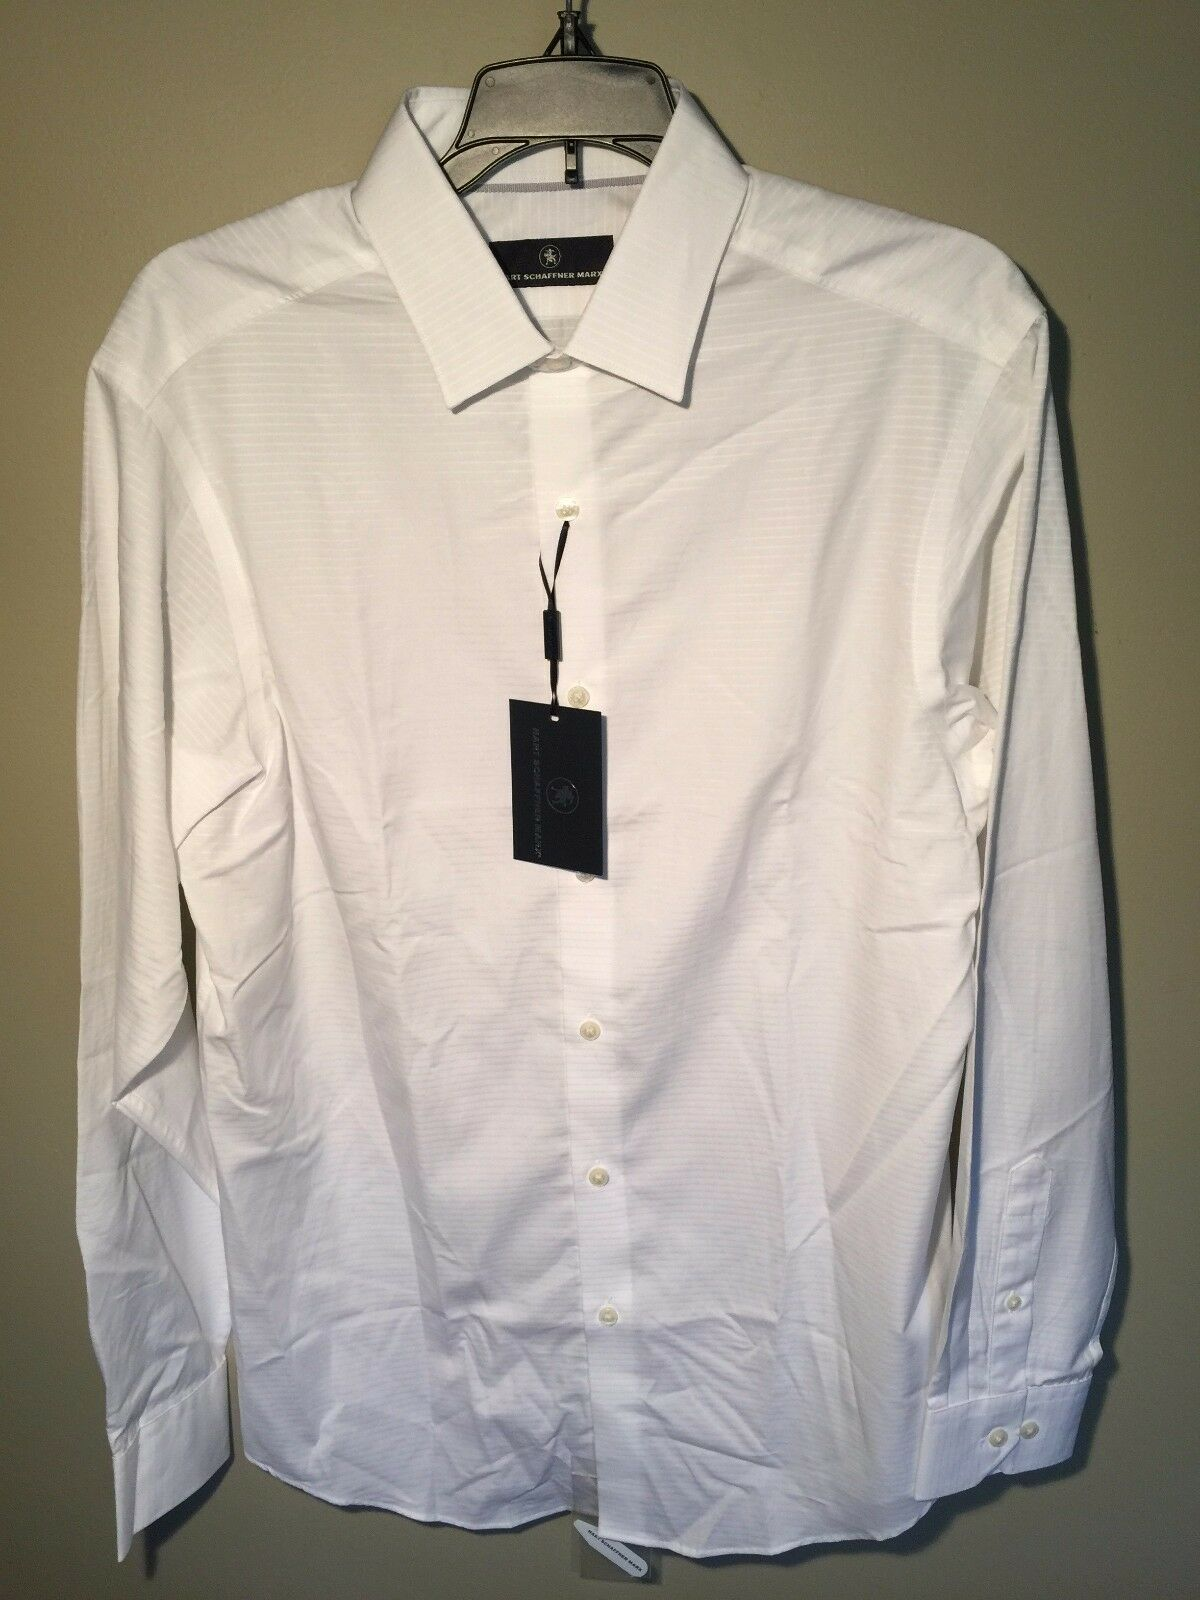 HART SCHAFFNER MARX DRESS CASUAL SHIRT 100% COTTON-MEDIUM